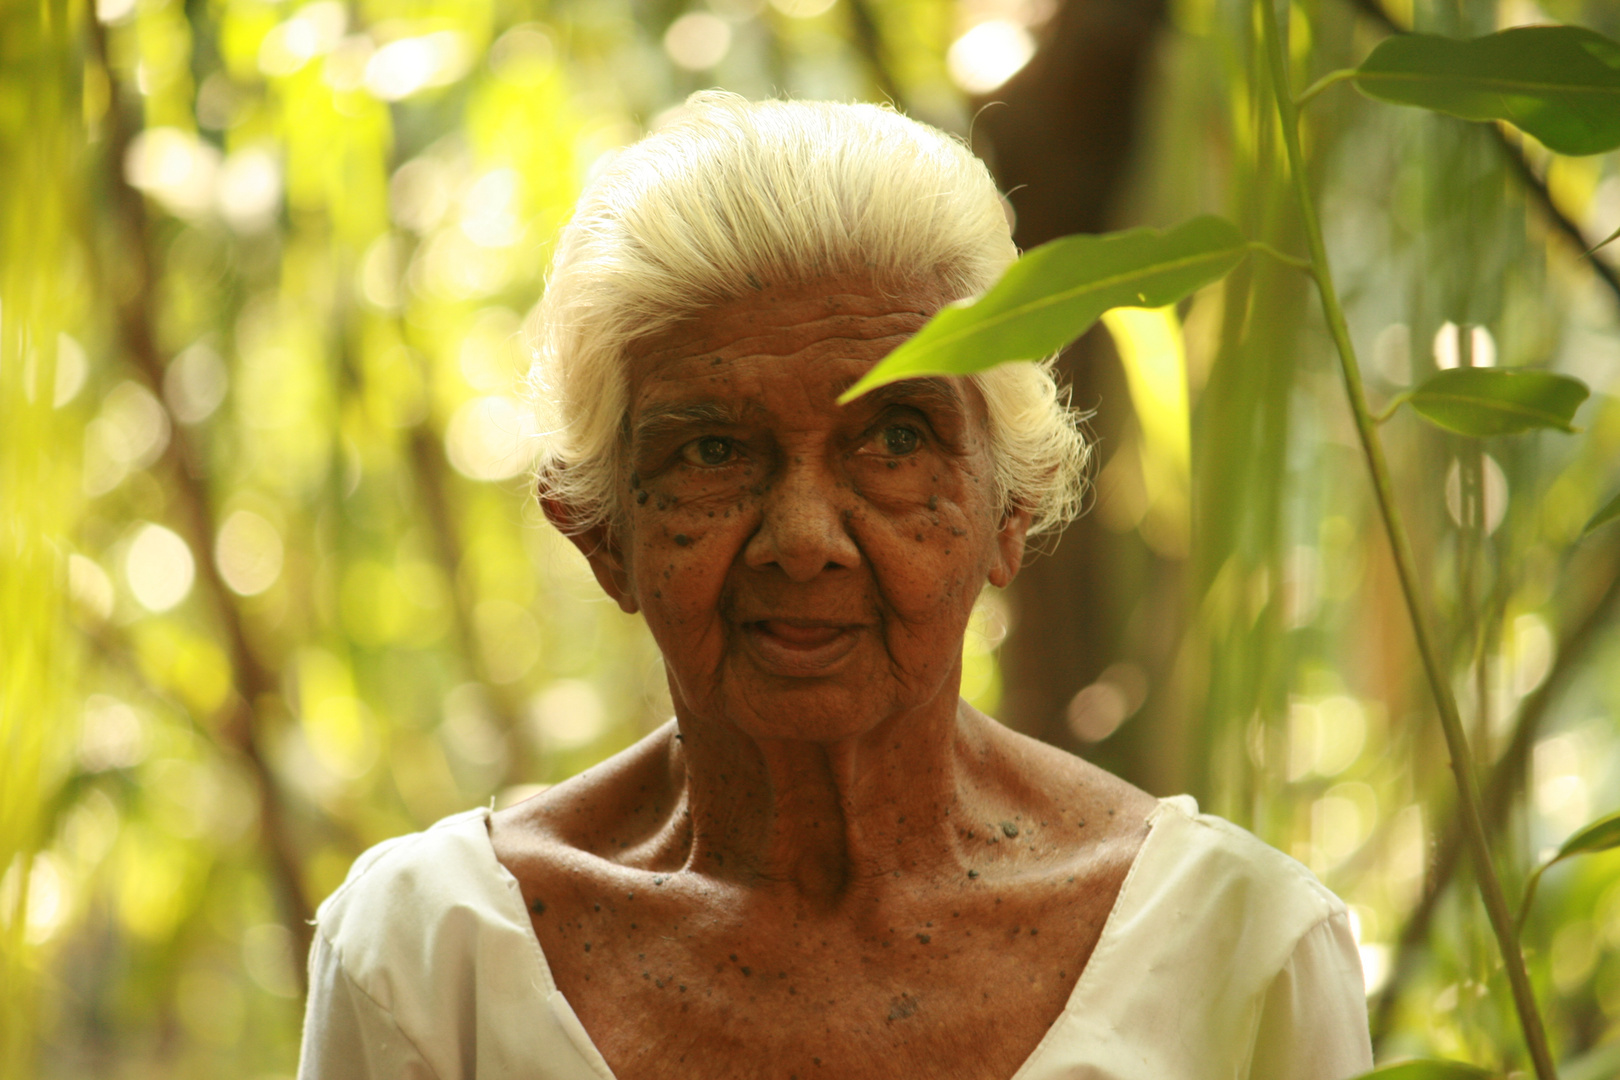 old lady - 83 years old